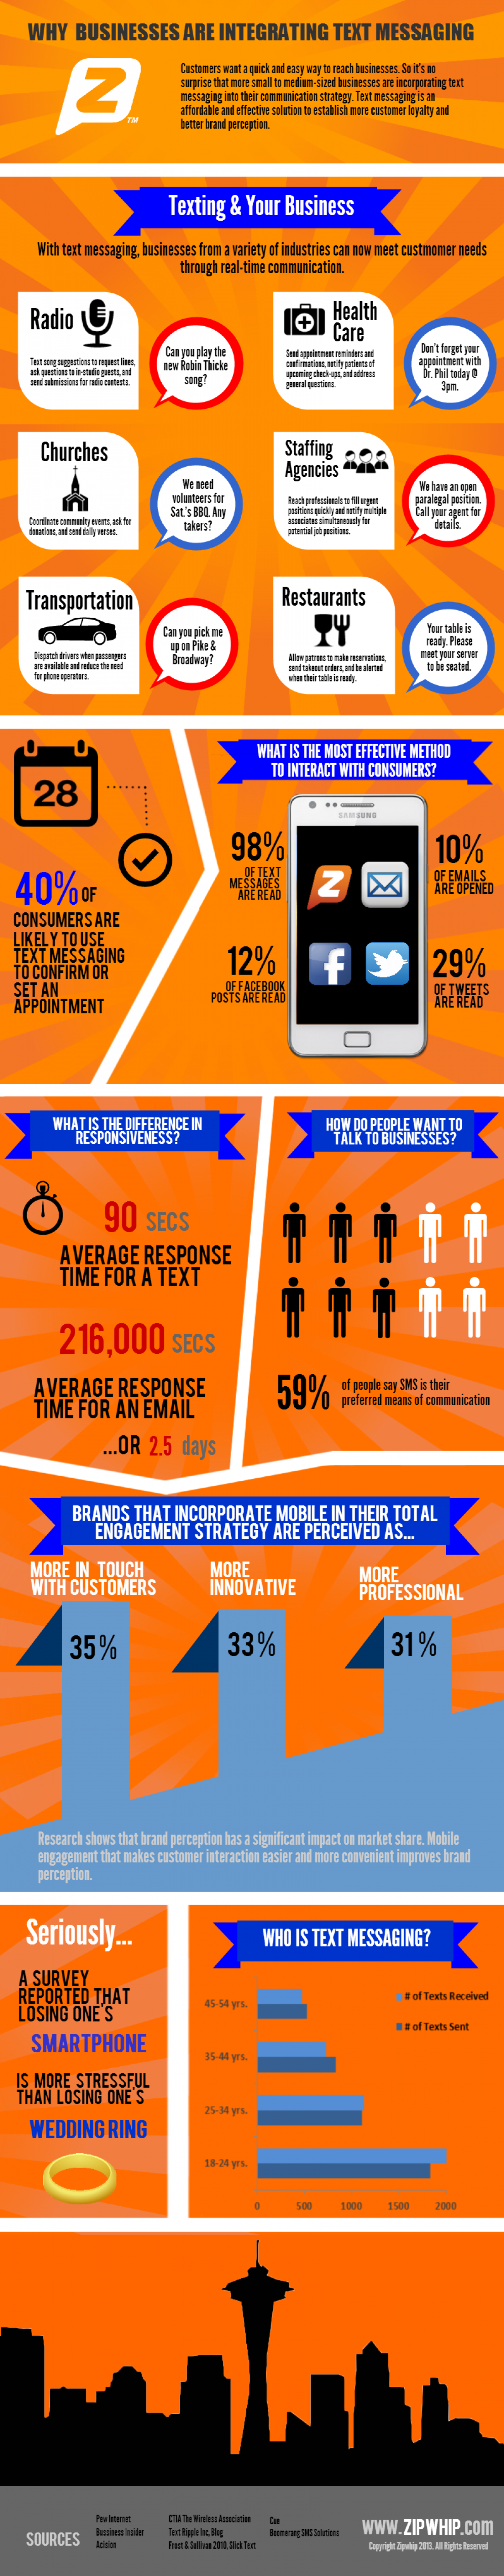 Why Businesses are Integrating Text Messaging Infographic